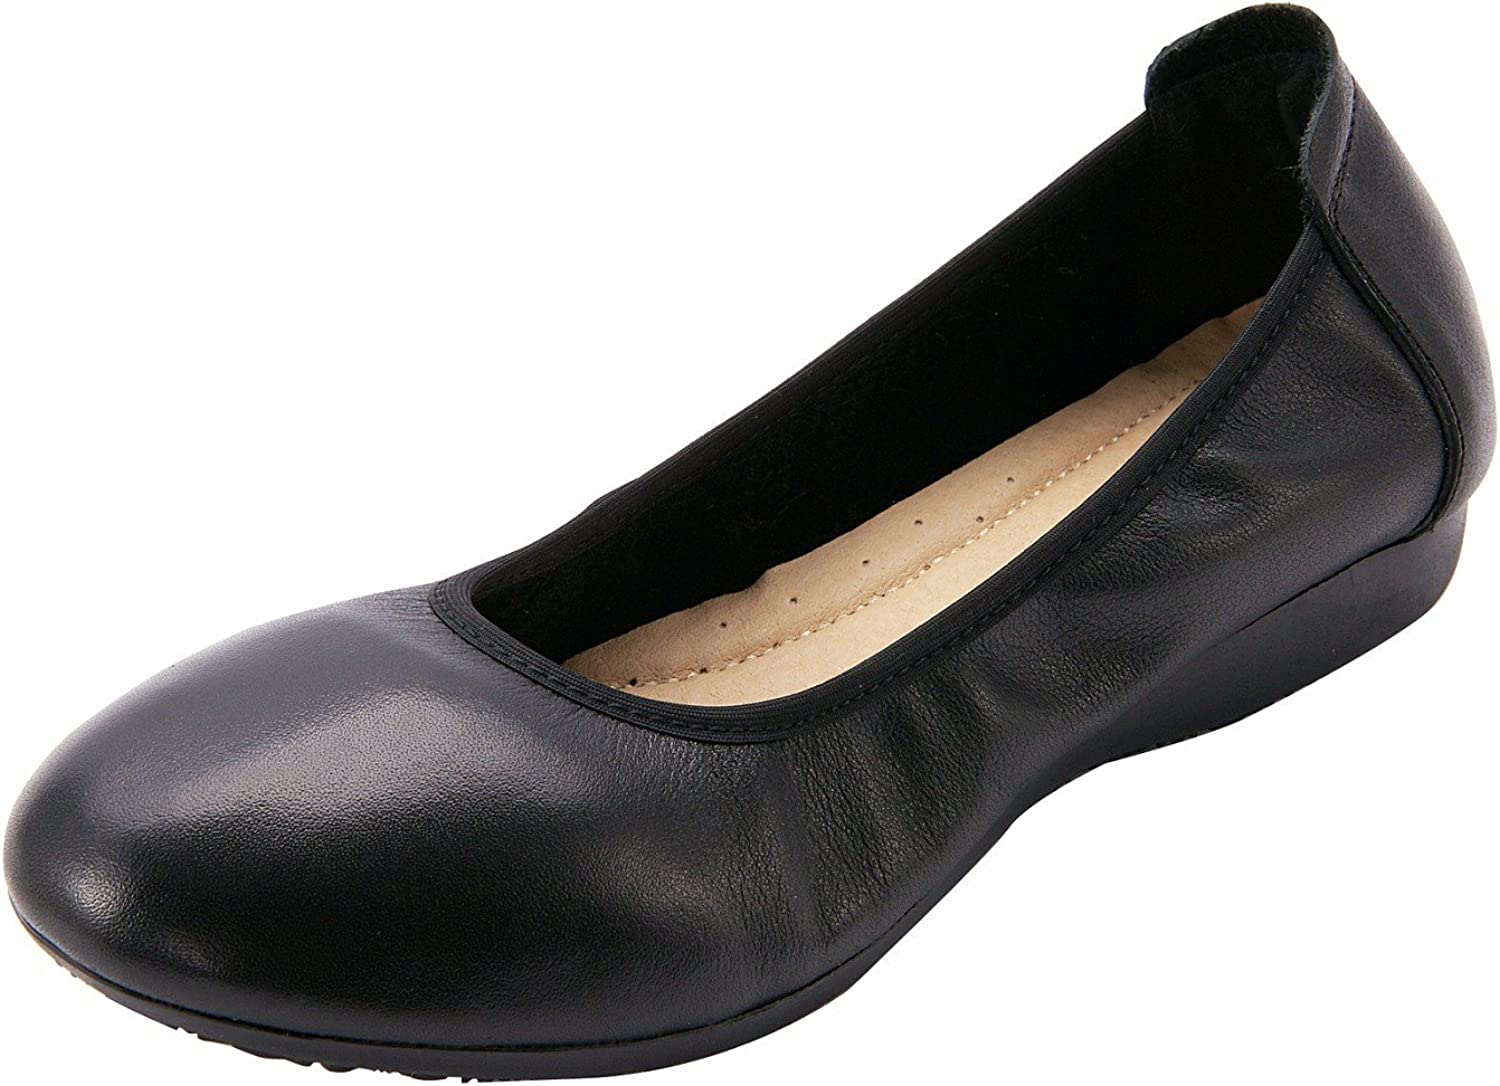 U-lite Women's Leather Low-Heel Low-top Slip-Ons Penny Loafers Wearable shoes